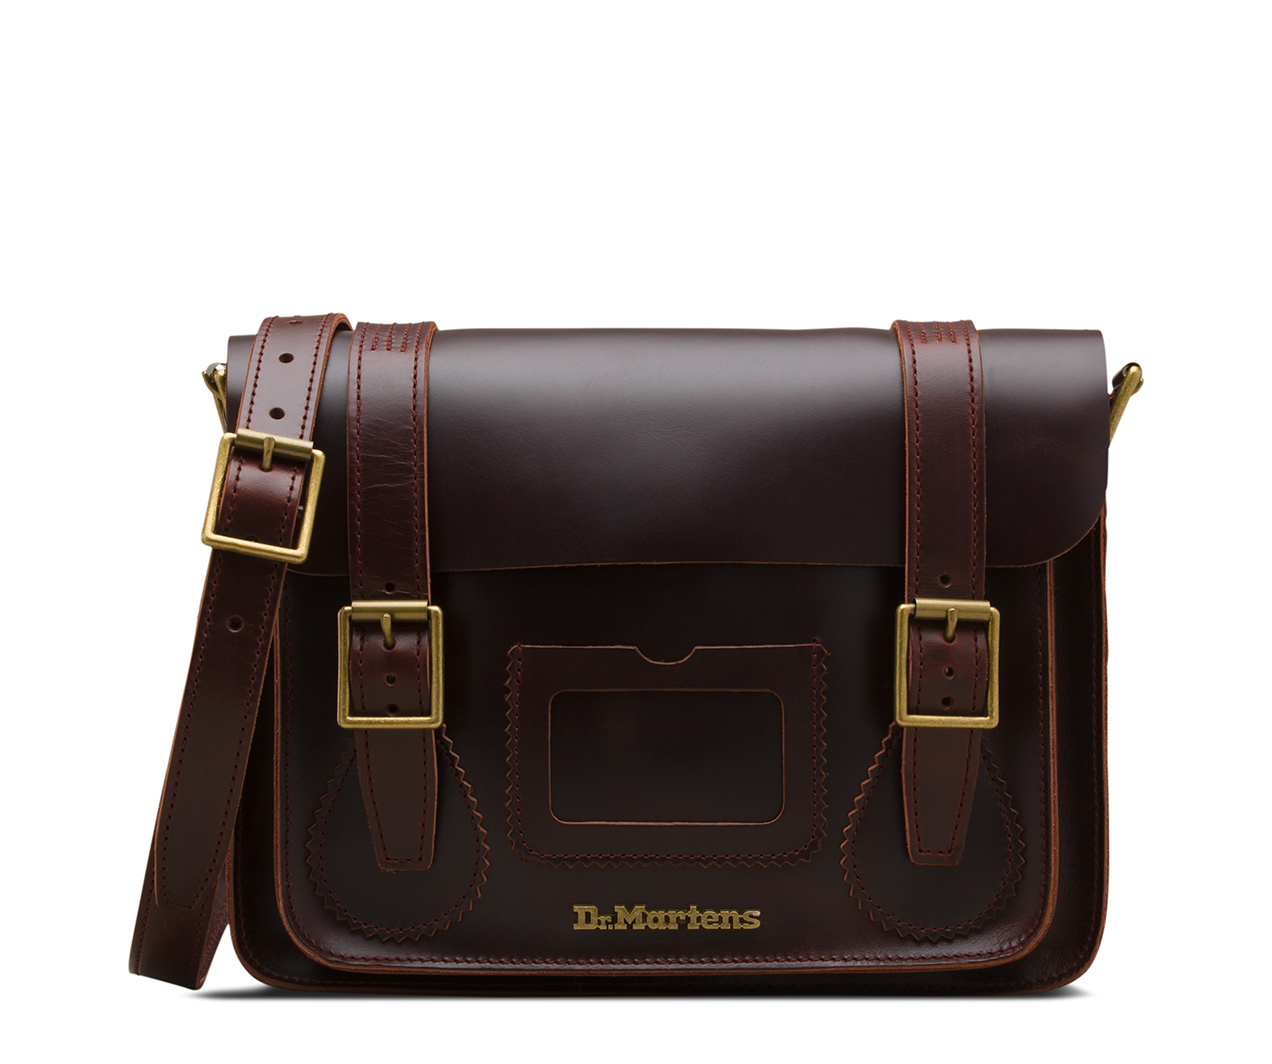 996d0b0a3f 11 inch LEATHER SATCHEL